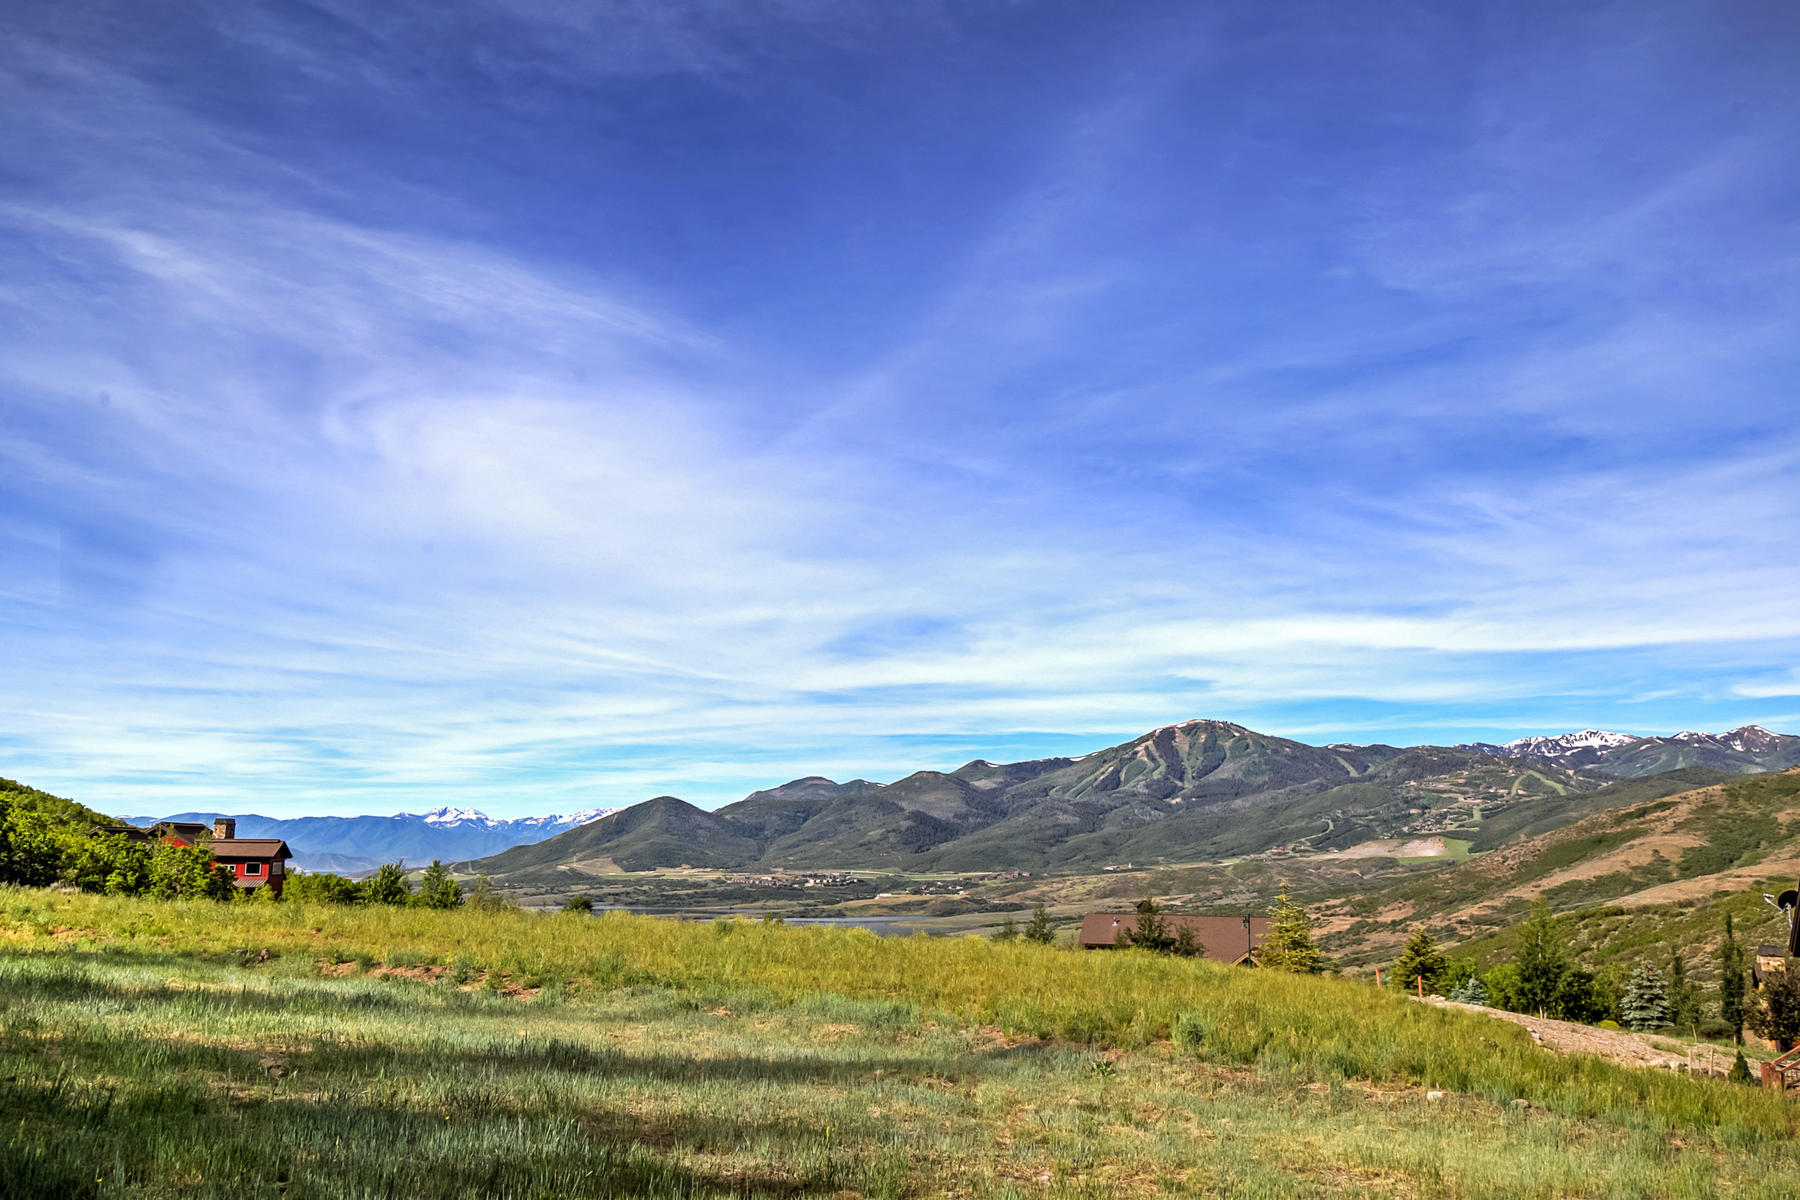 Land for Sale at Aggressively Priced Deer Mountain Lot 13284 N Slalom Run Dr Lot 26 Heber, Utah 84032 United States